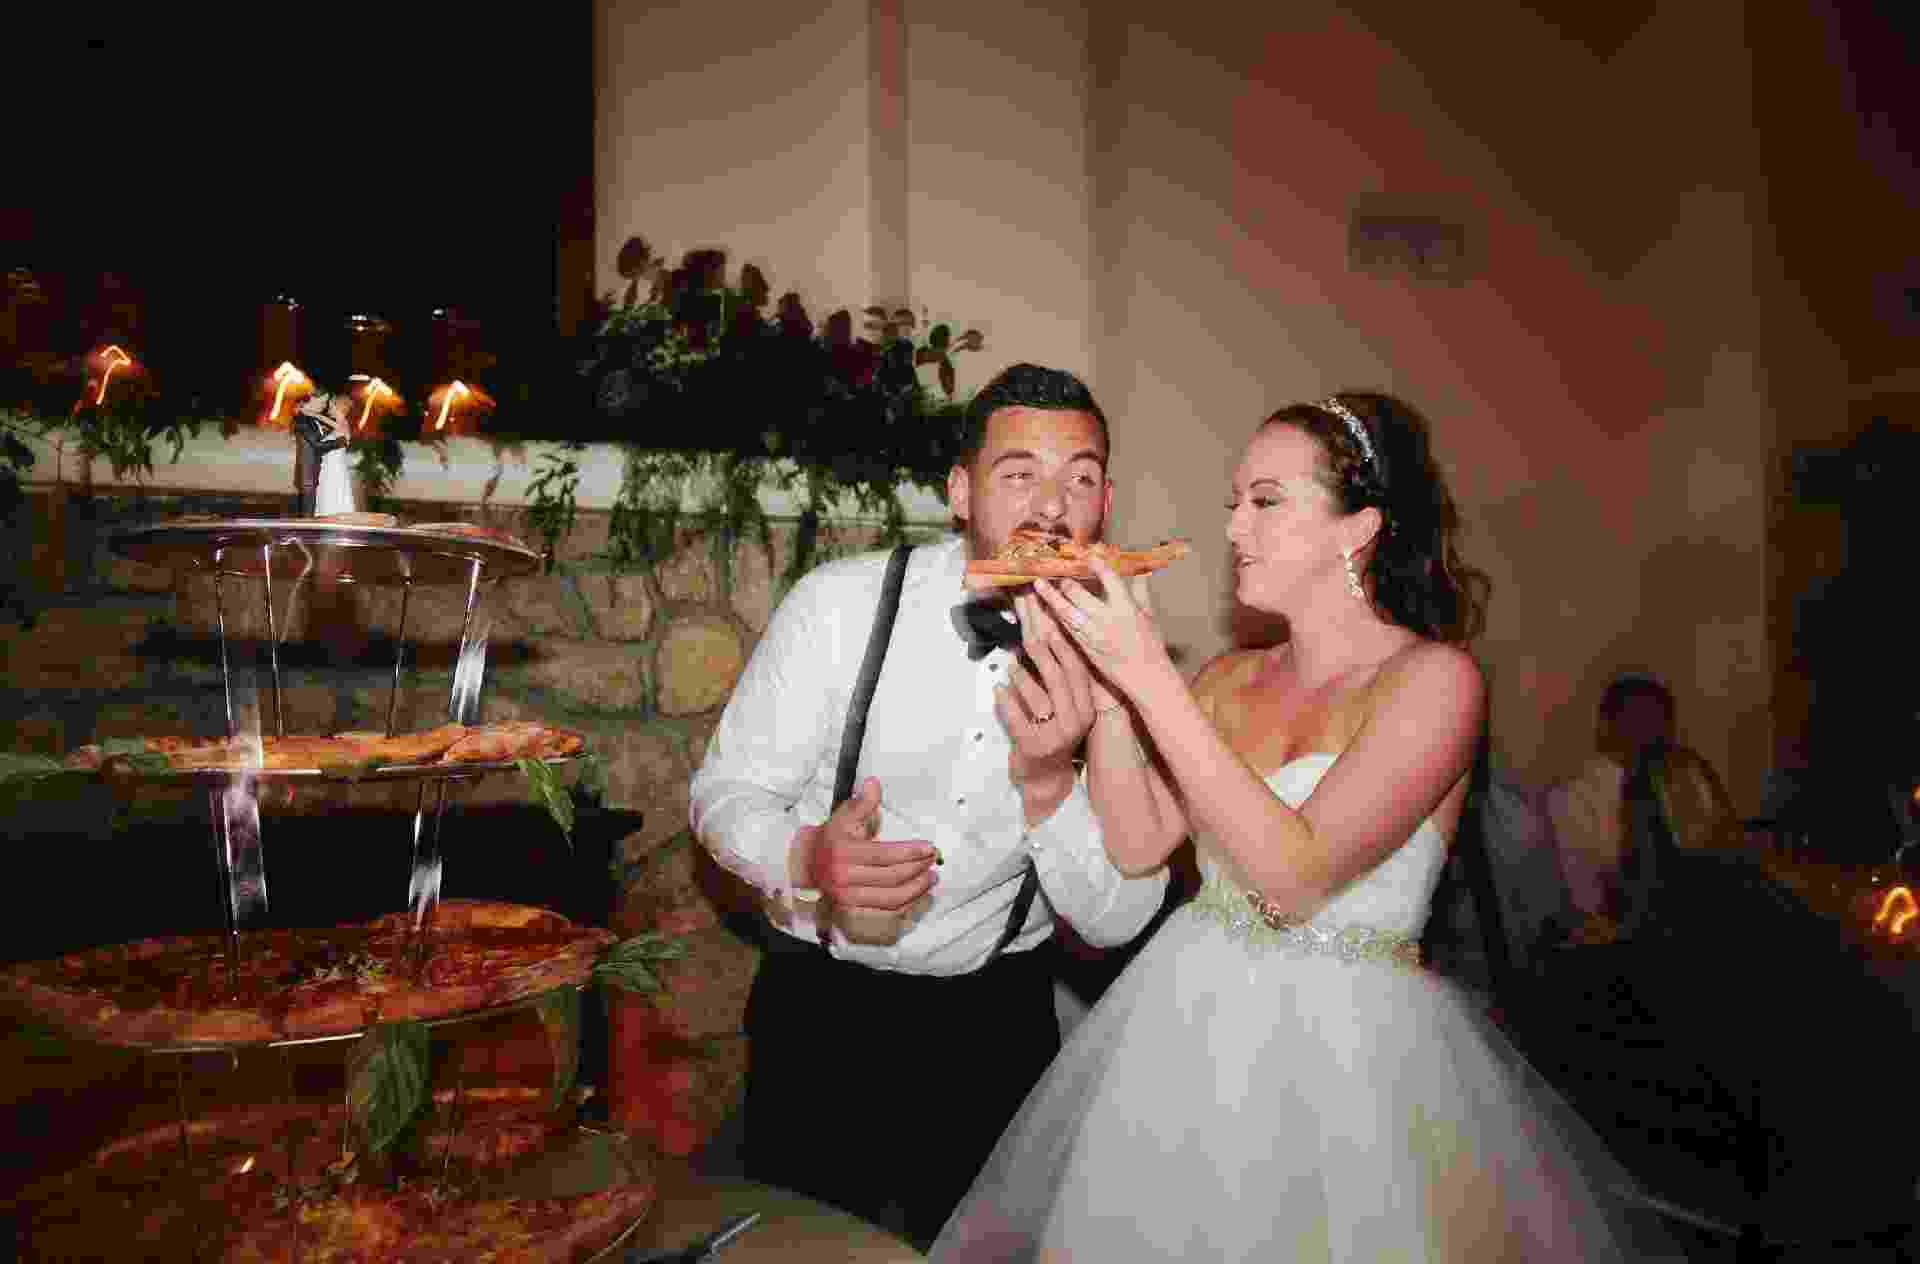 Casamento com pizza - Todd Good Photography